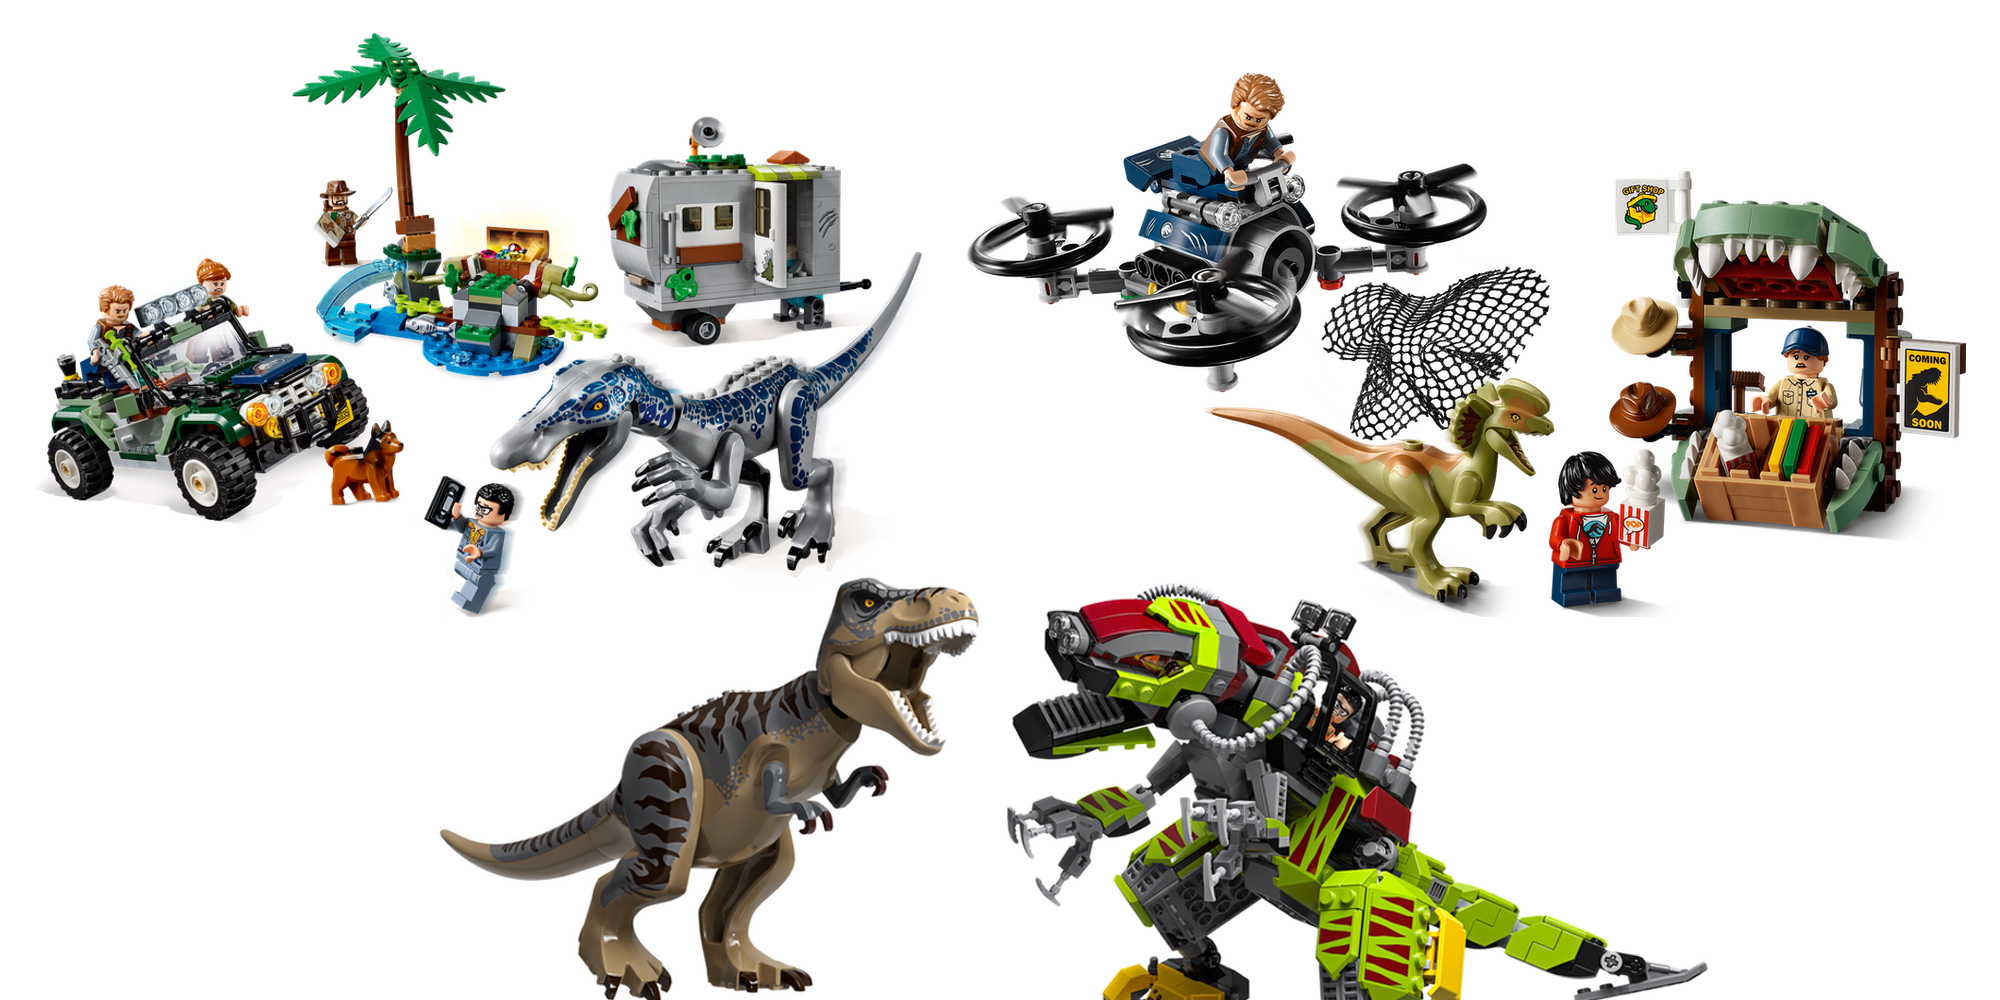 LEGO debuts four new dinosaur-packed Jurassic World kits ahead of New York Toy Fair